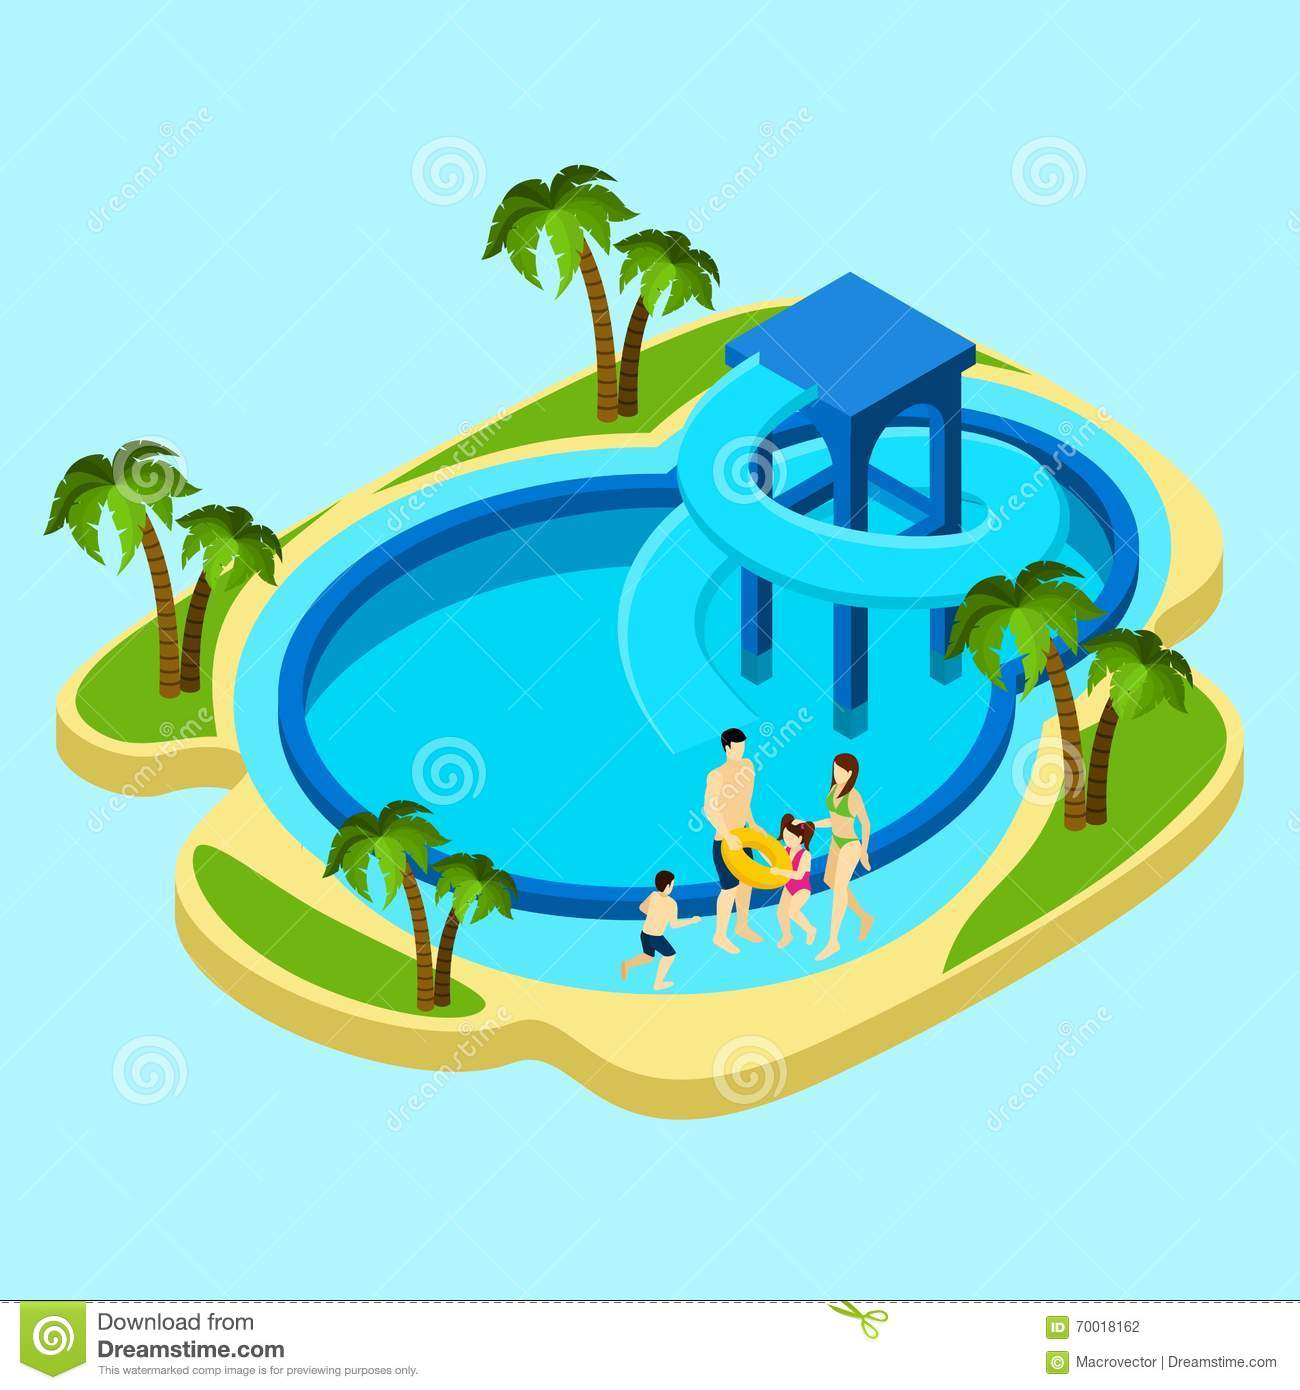 Family At Water Park Illustration Stock Vector ...